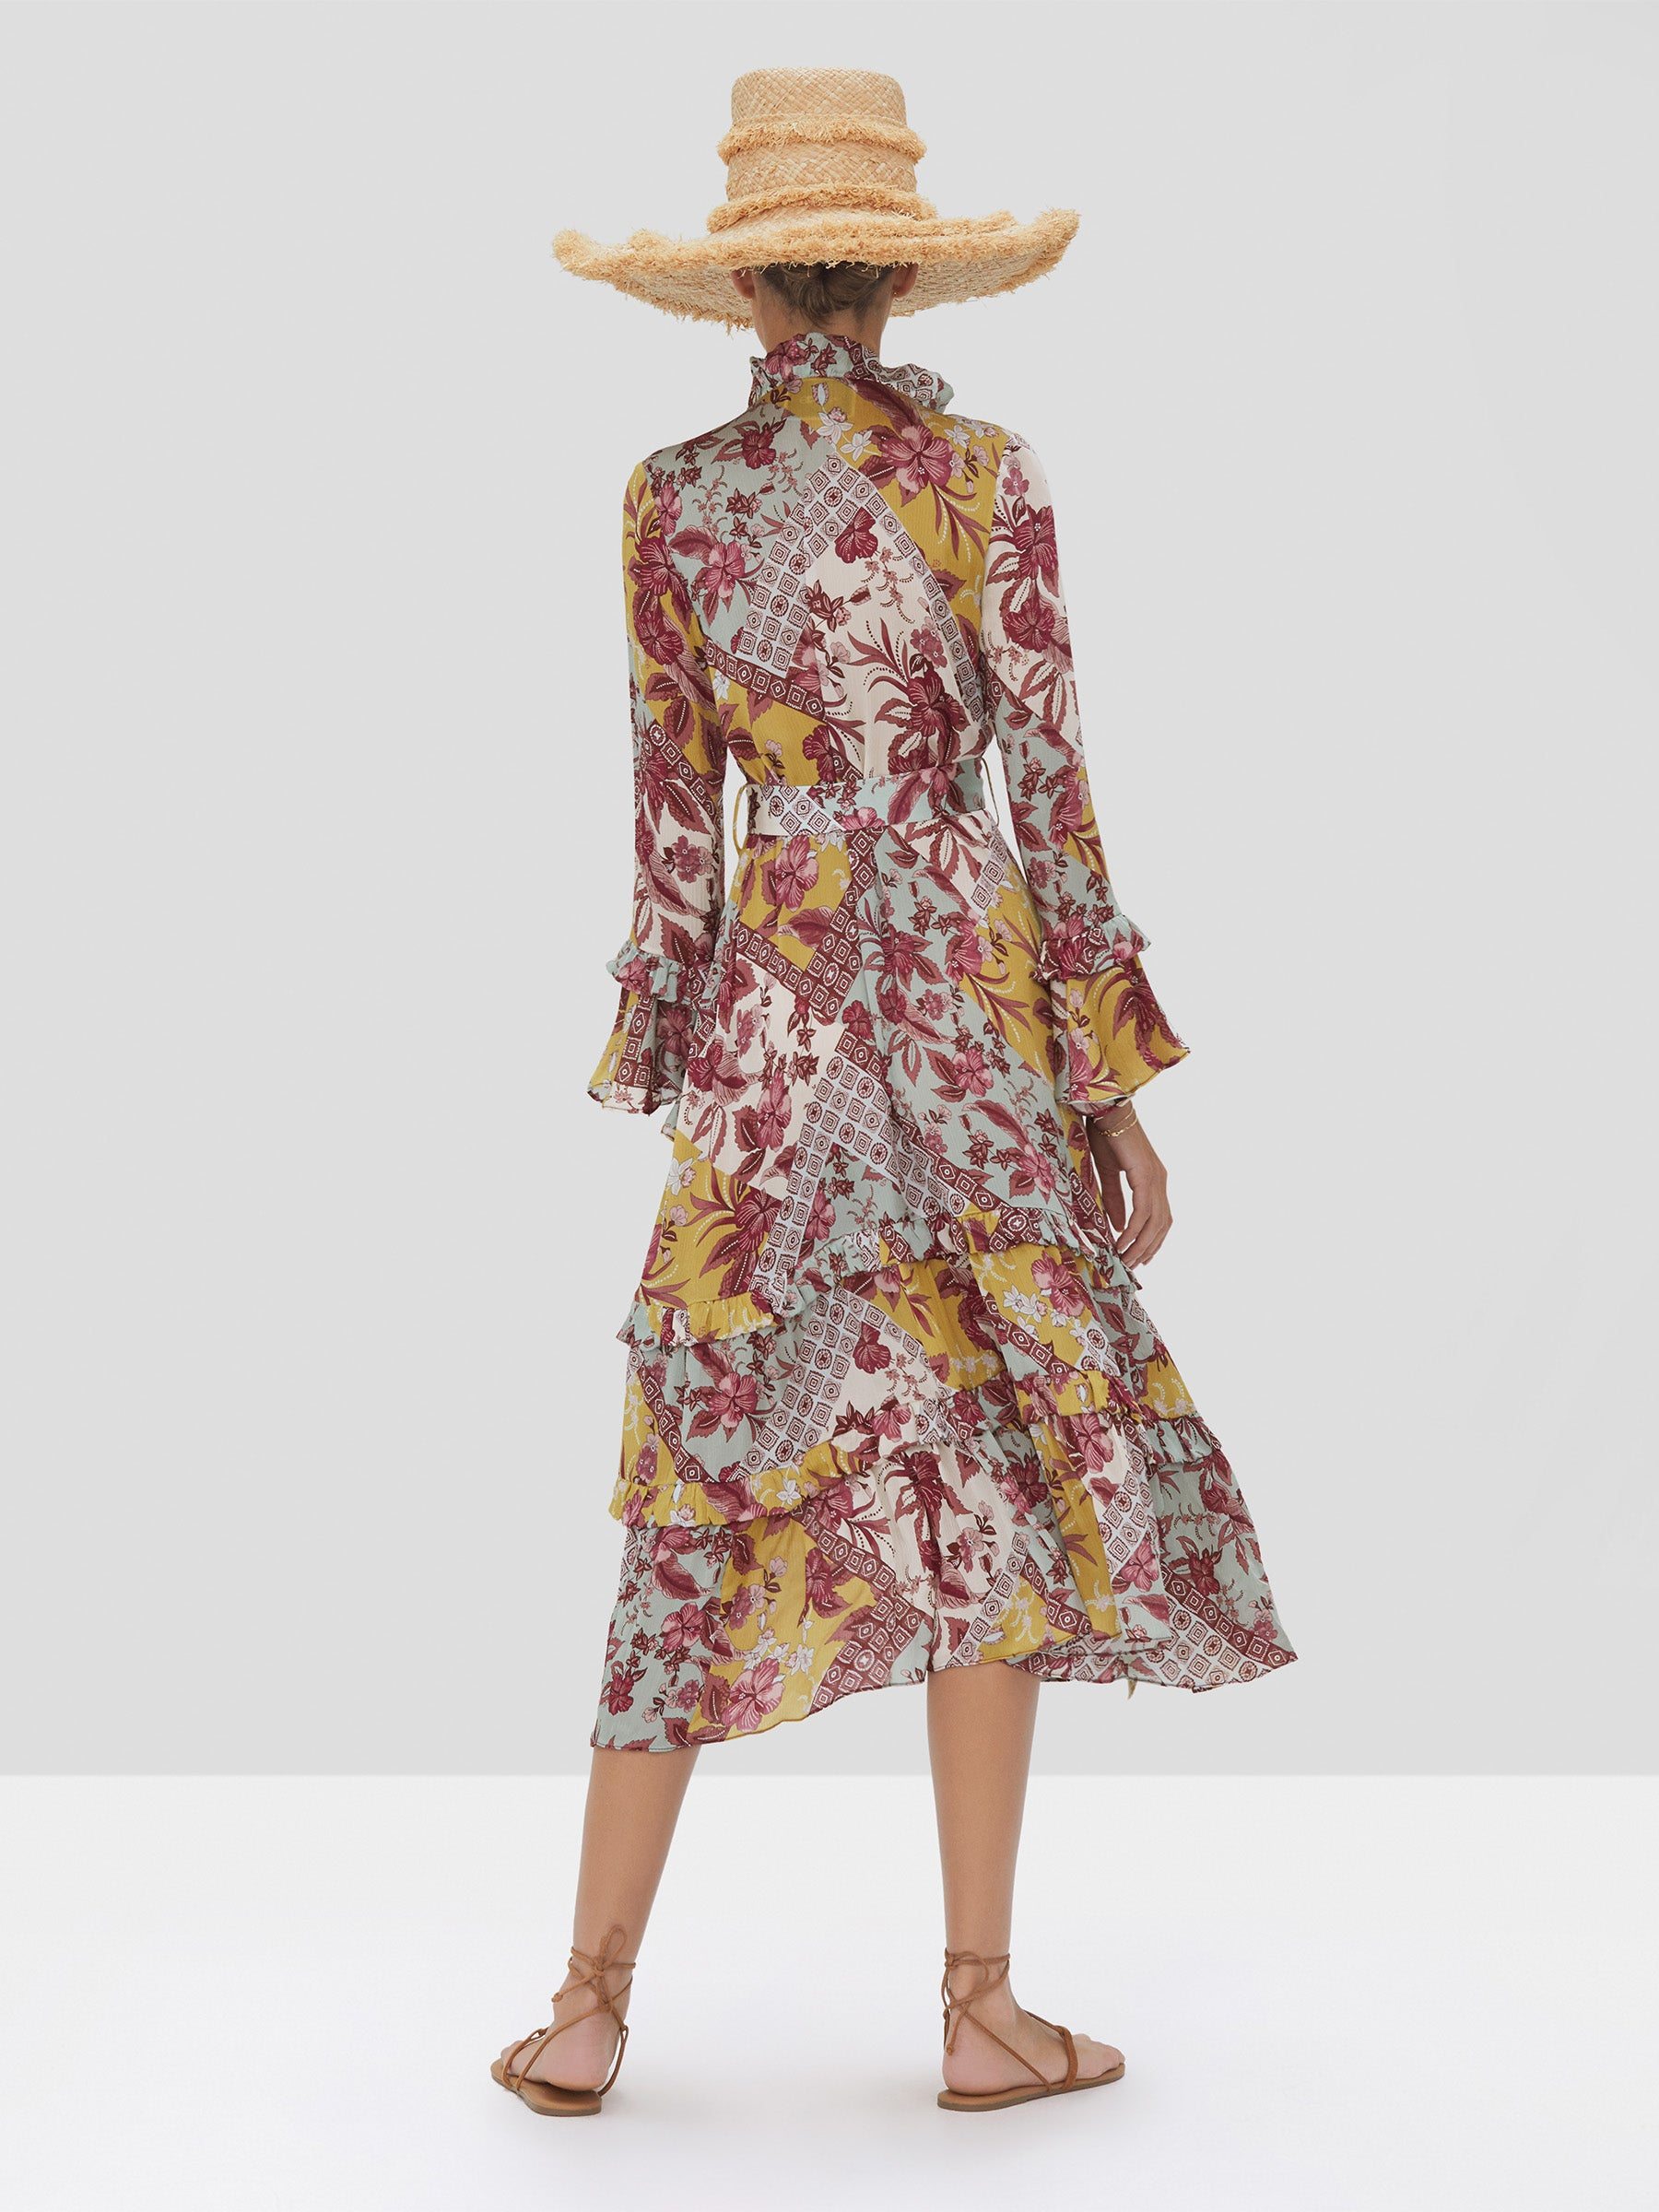 Alexis Wiera Dress in Berry Foulard from the Spring Summer 2020 Collection - Rear View